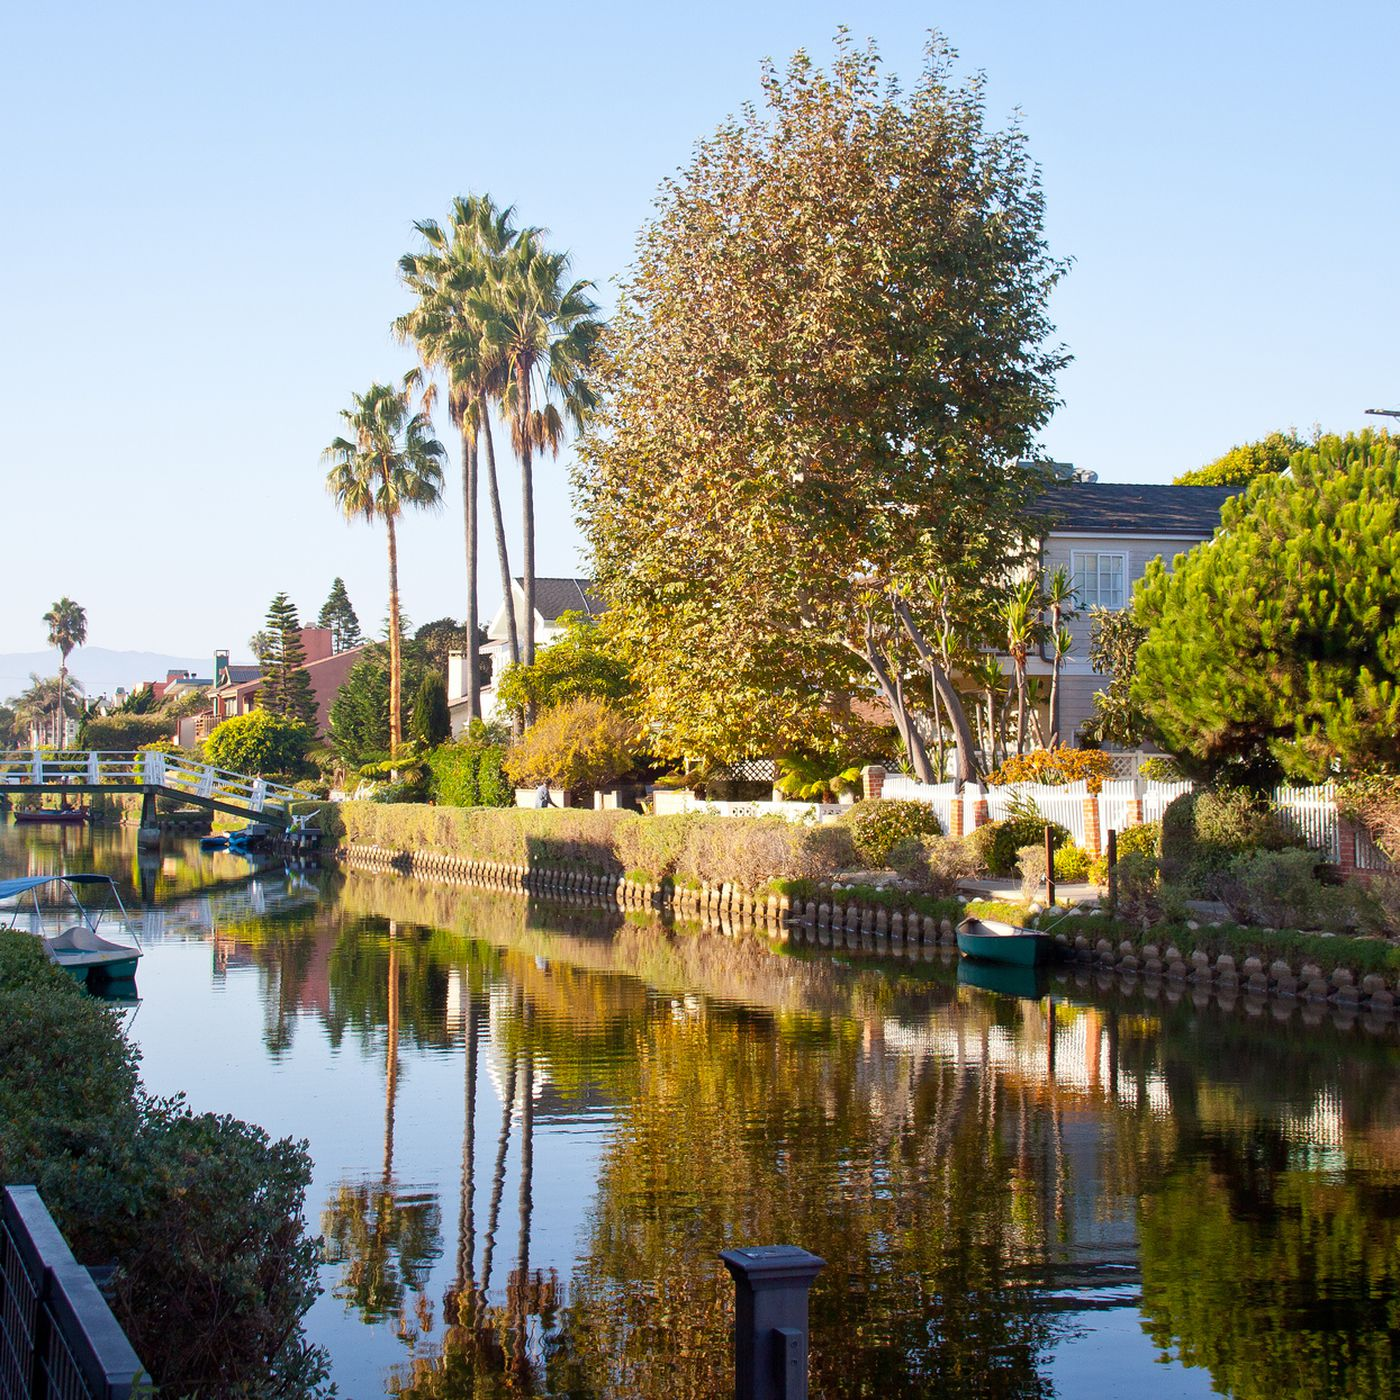 Median home prices in Venice are rapidly approaching $2 million ...